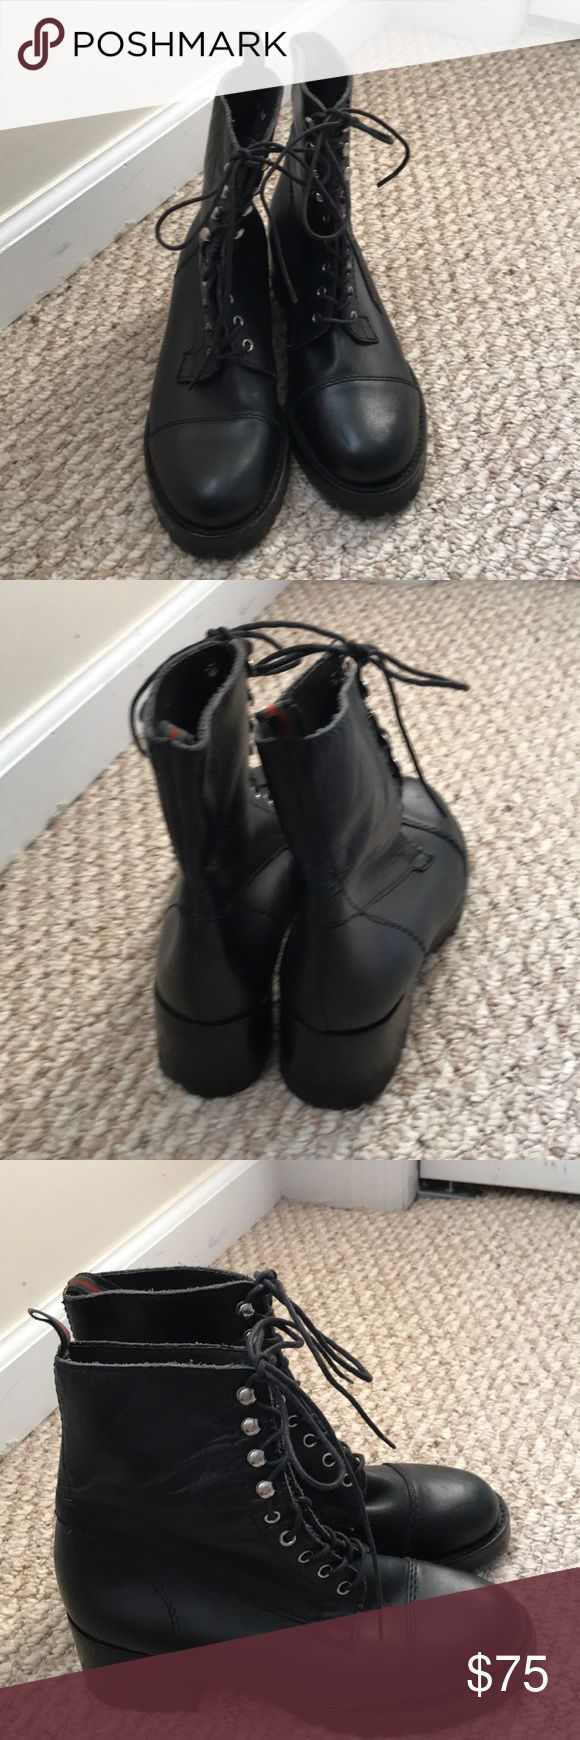 Ladies Black Leather Combat Boots sz 7.5 These are New never worn black leather combat boots By ESPACE size 7.5. They retail for $250.  These will not only look cute with your outfits but will keep you warm! Shoes Combat & Moto Boots